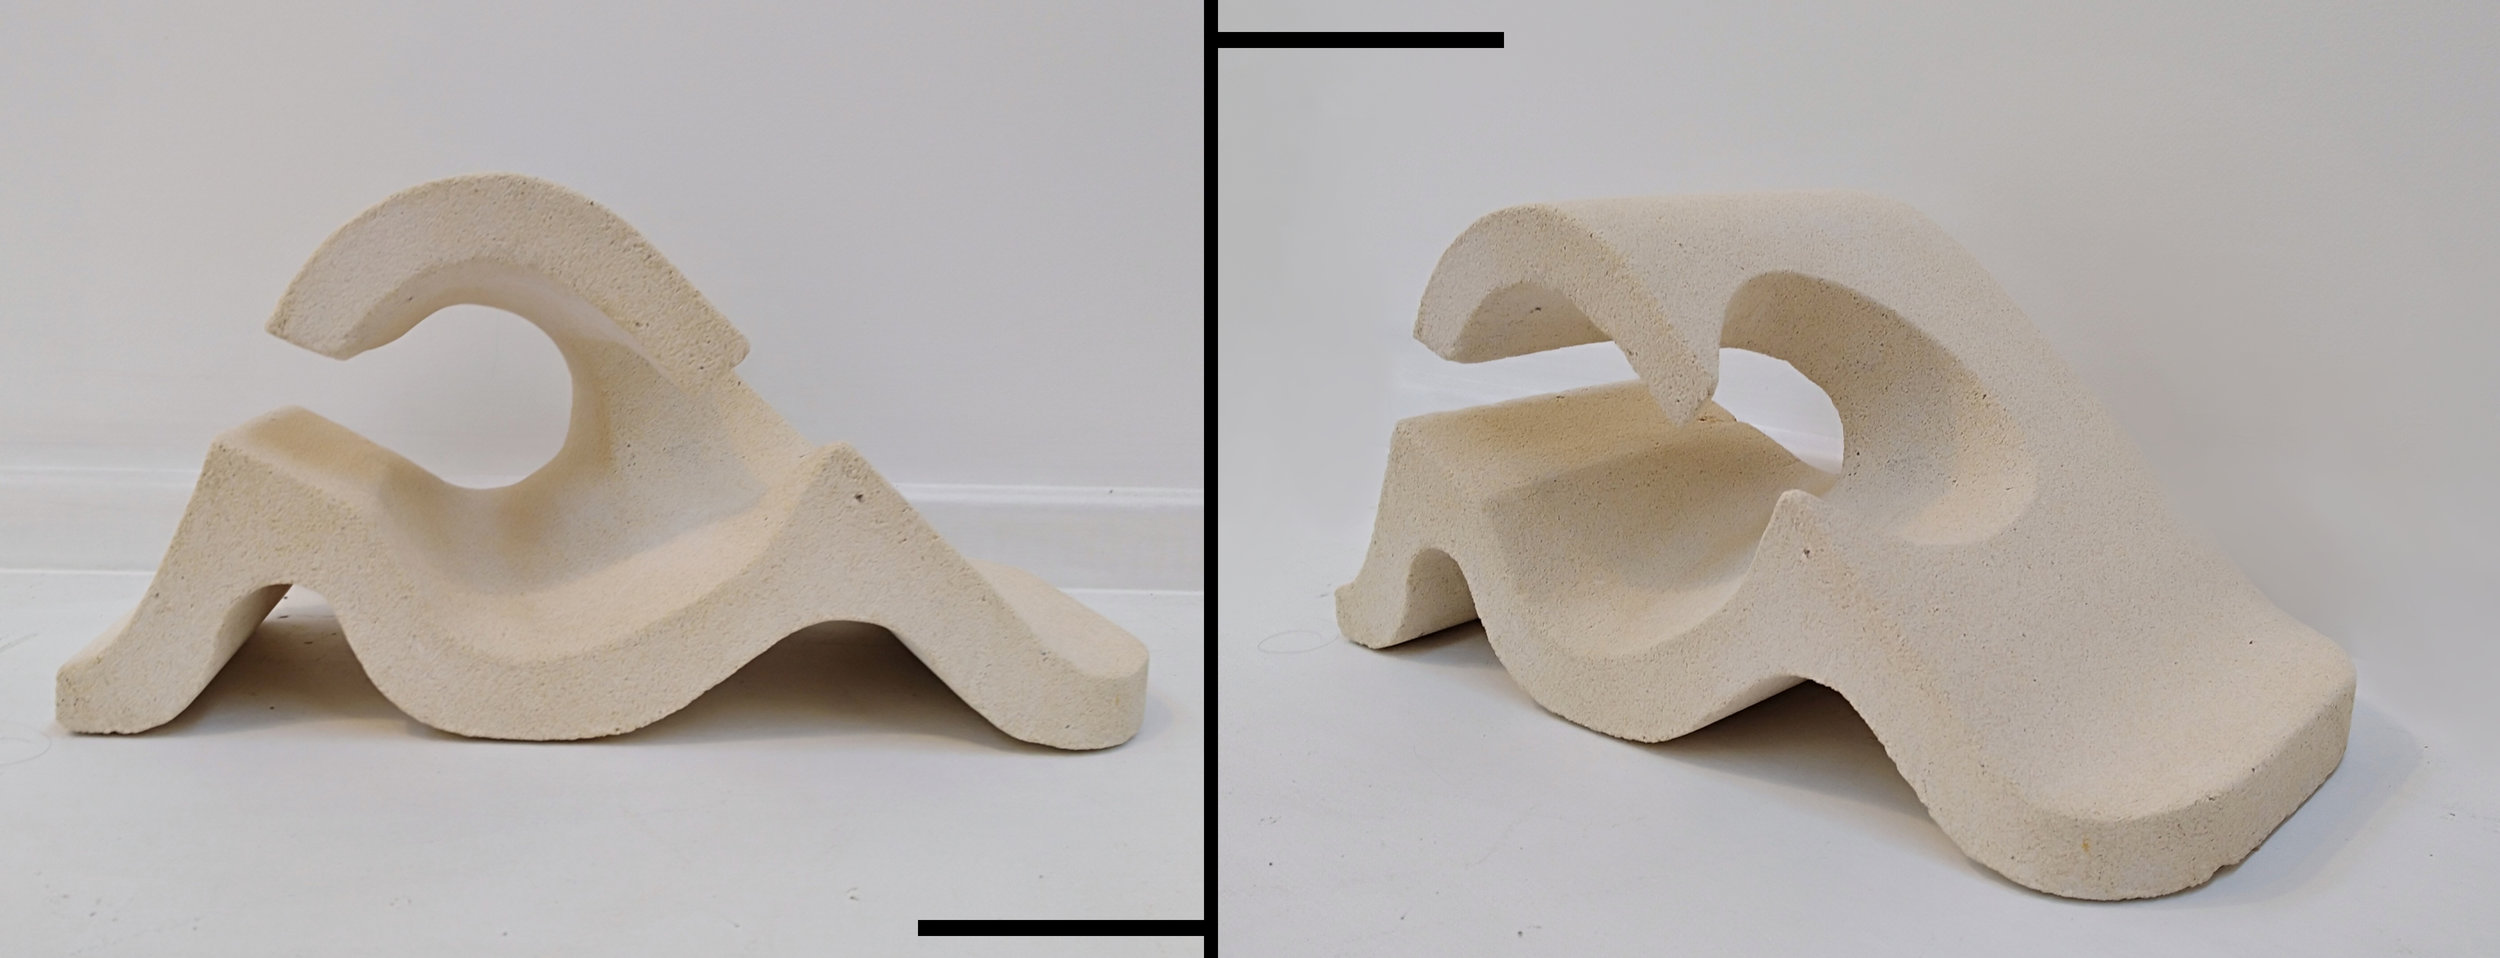 Broken Wave  Fraser McRae, unsealed White Oamaru Limestone, indoor/outdoor (if used outdoor, we recommend sealing with a silicone or water-based stone sealant), 340mm x 160mm  $450.00